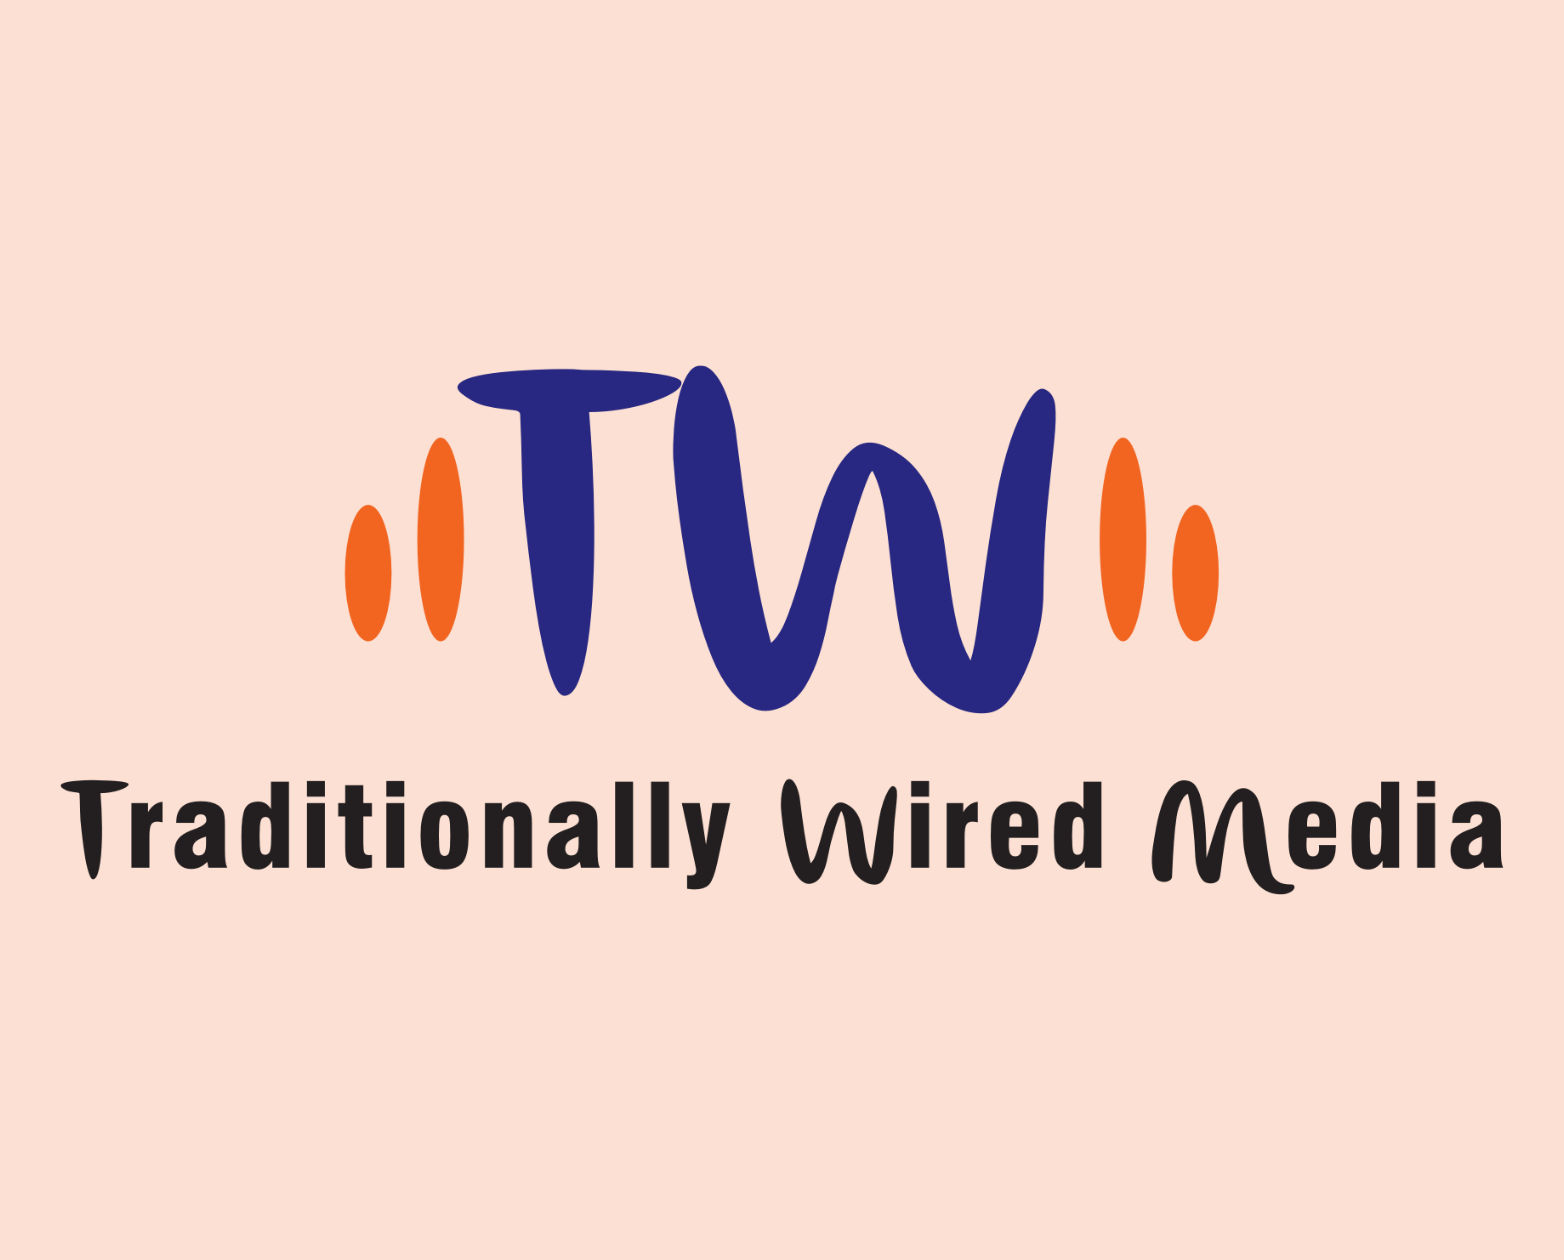 Traditionally Wired Media